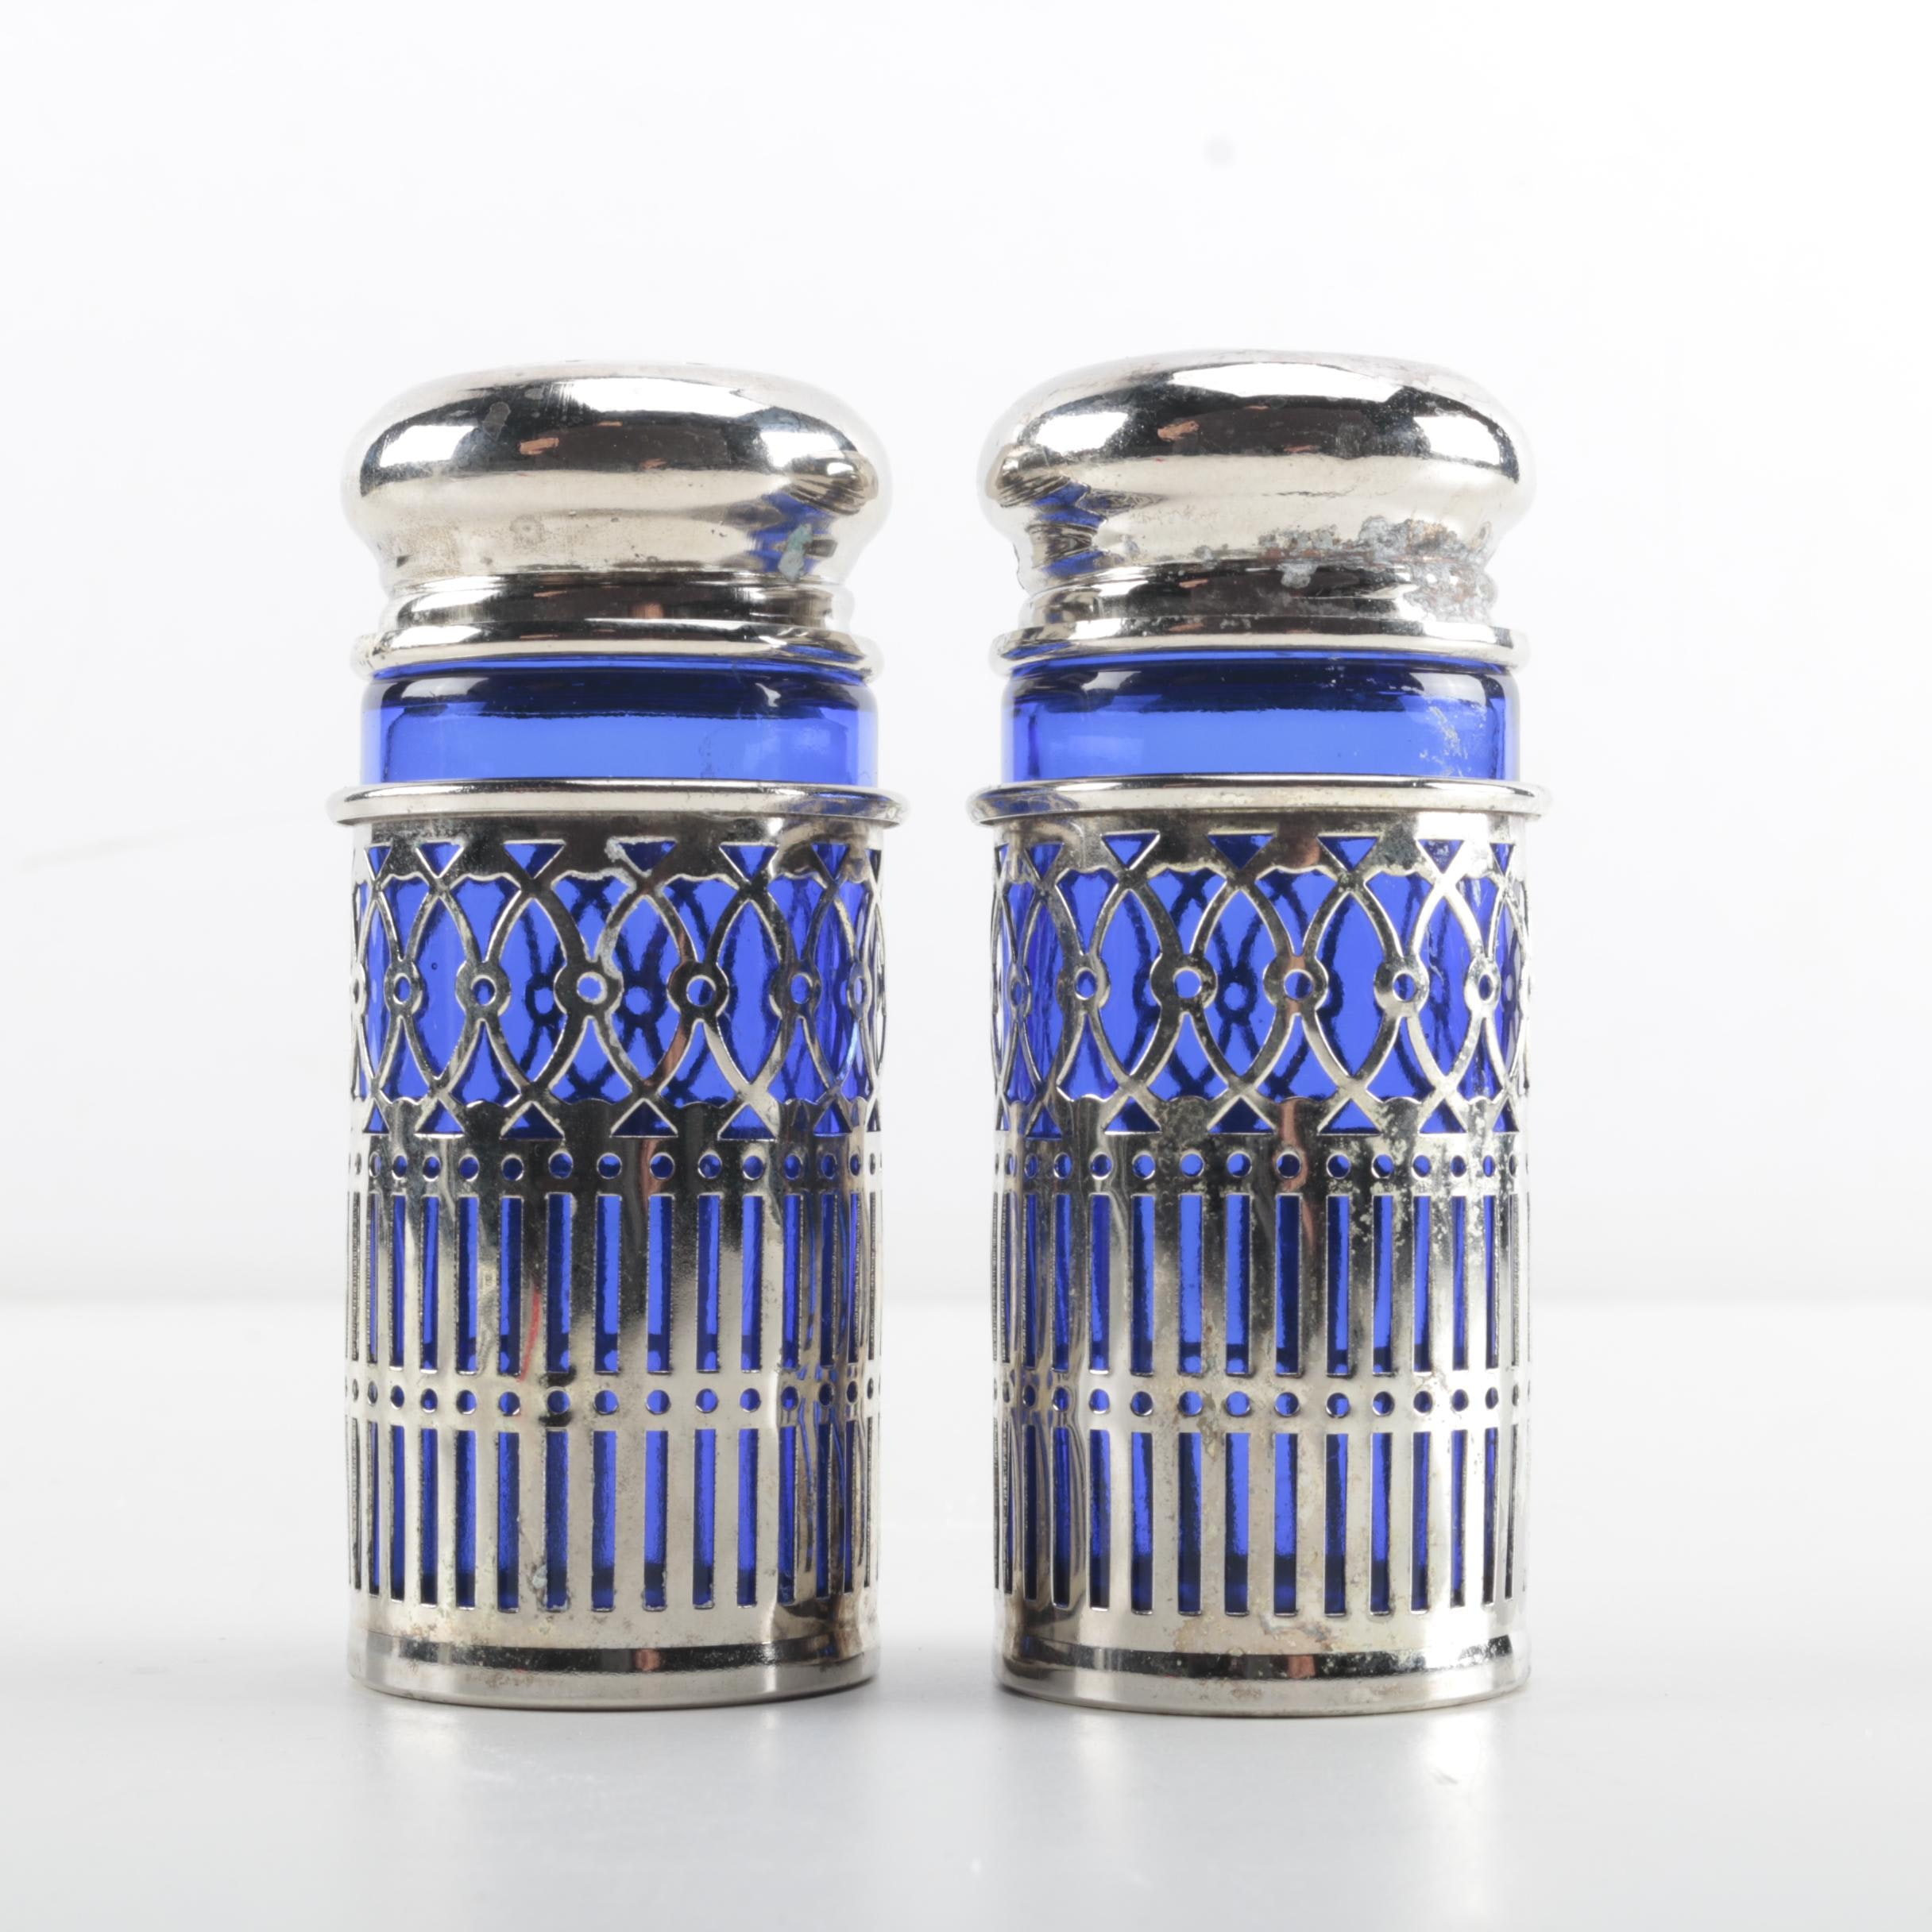 Silver Plate and Cobalt Blue Glass Salt and Pepper Shakers